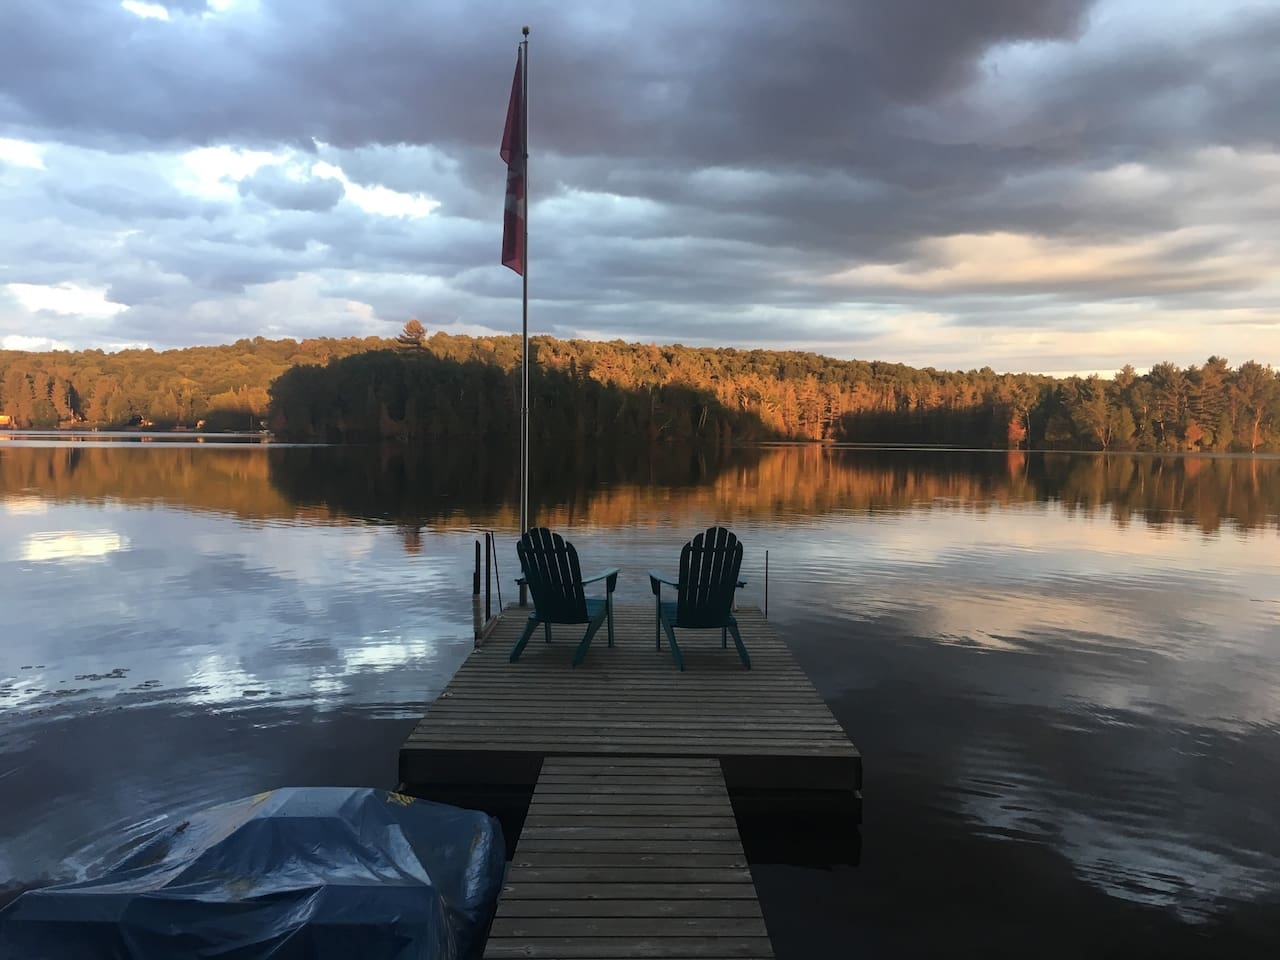 Calm evening on the lake.